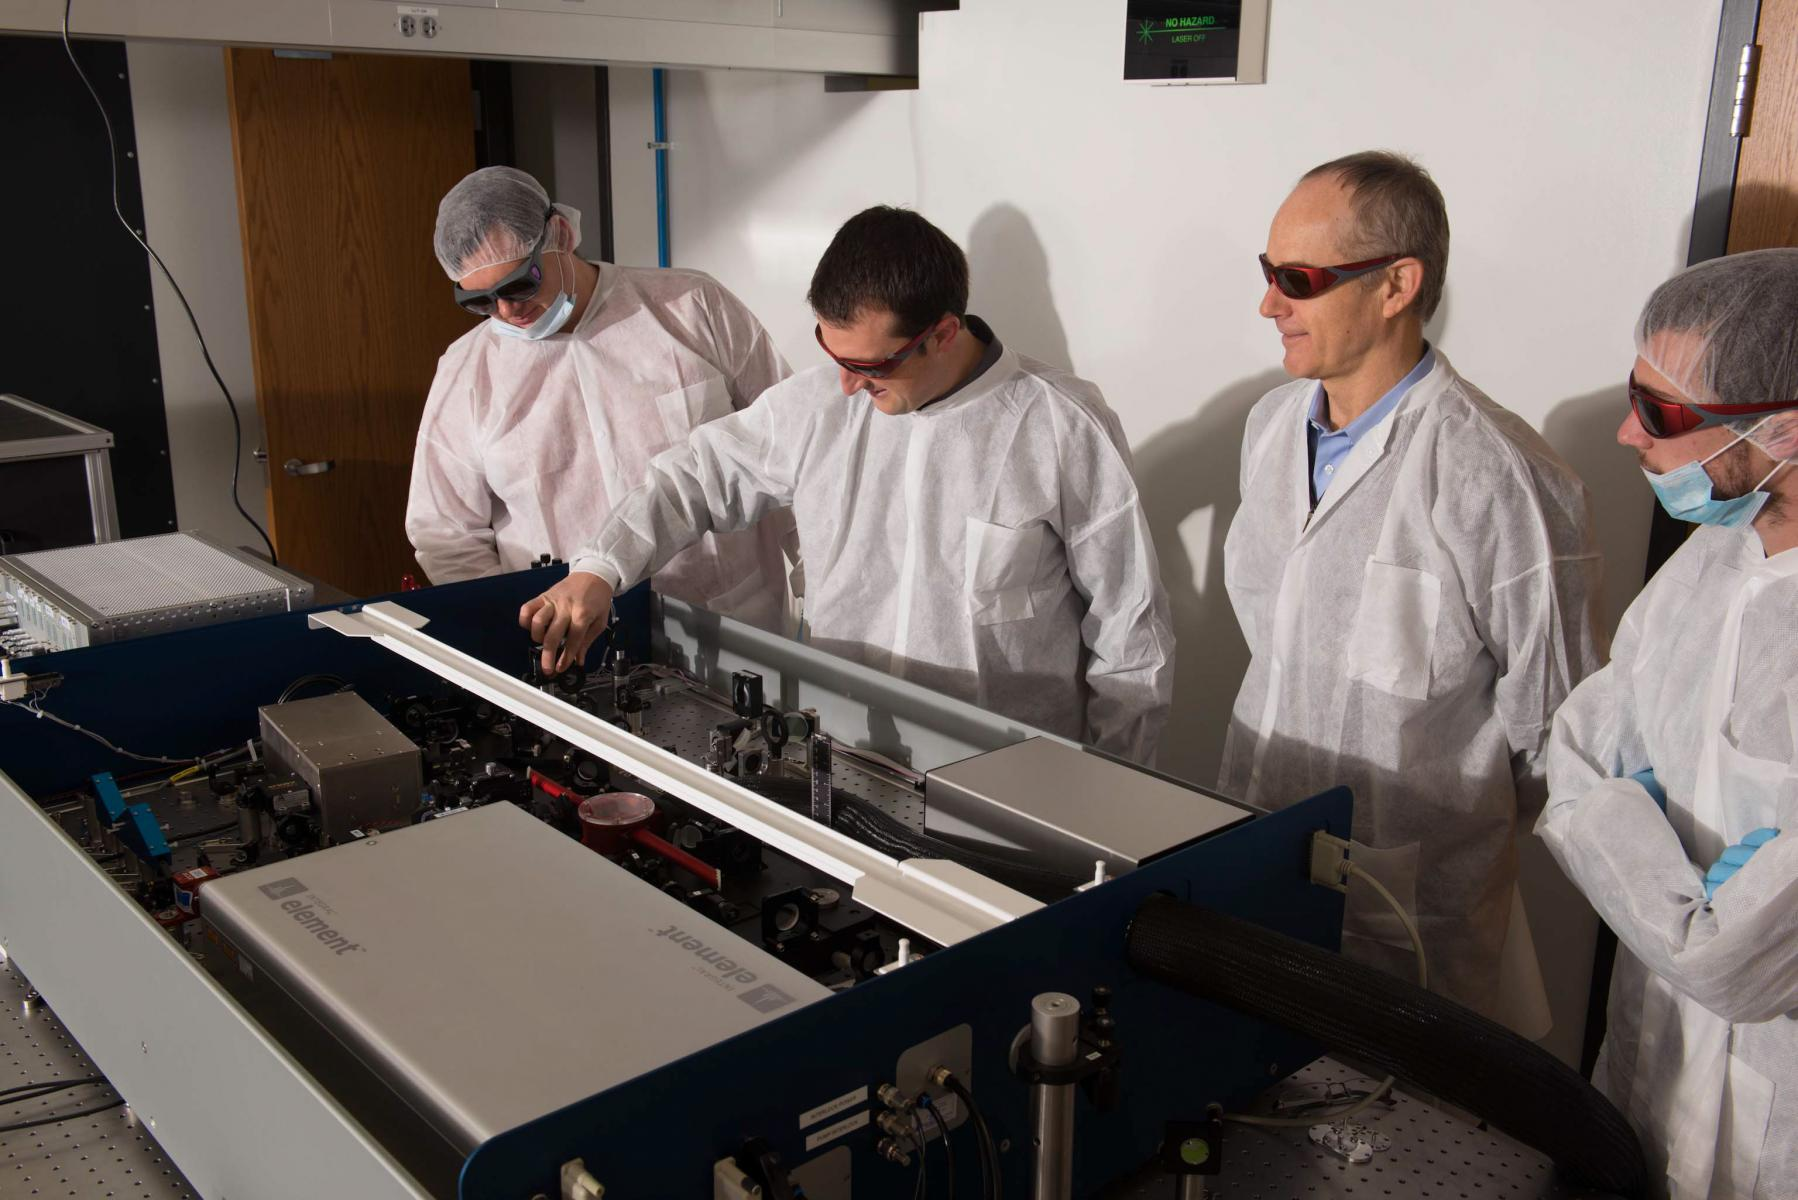 Nebraska laser lab generates light that's 'out of this world'